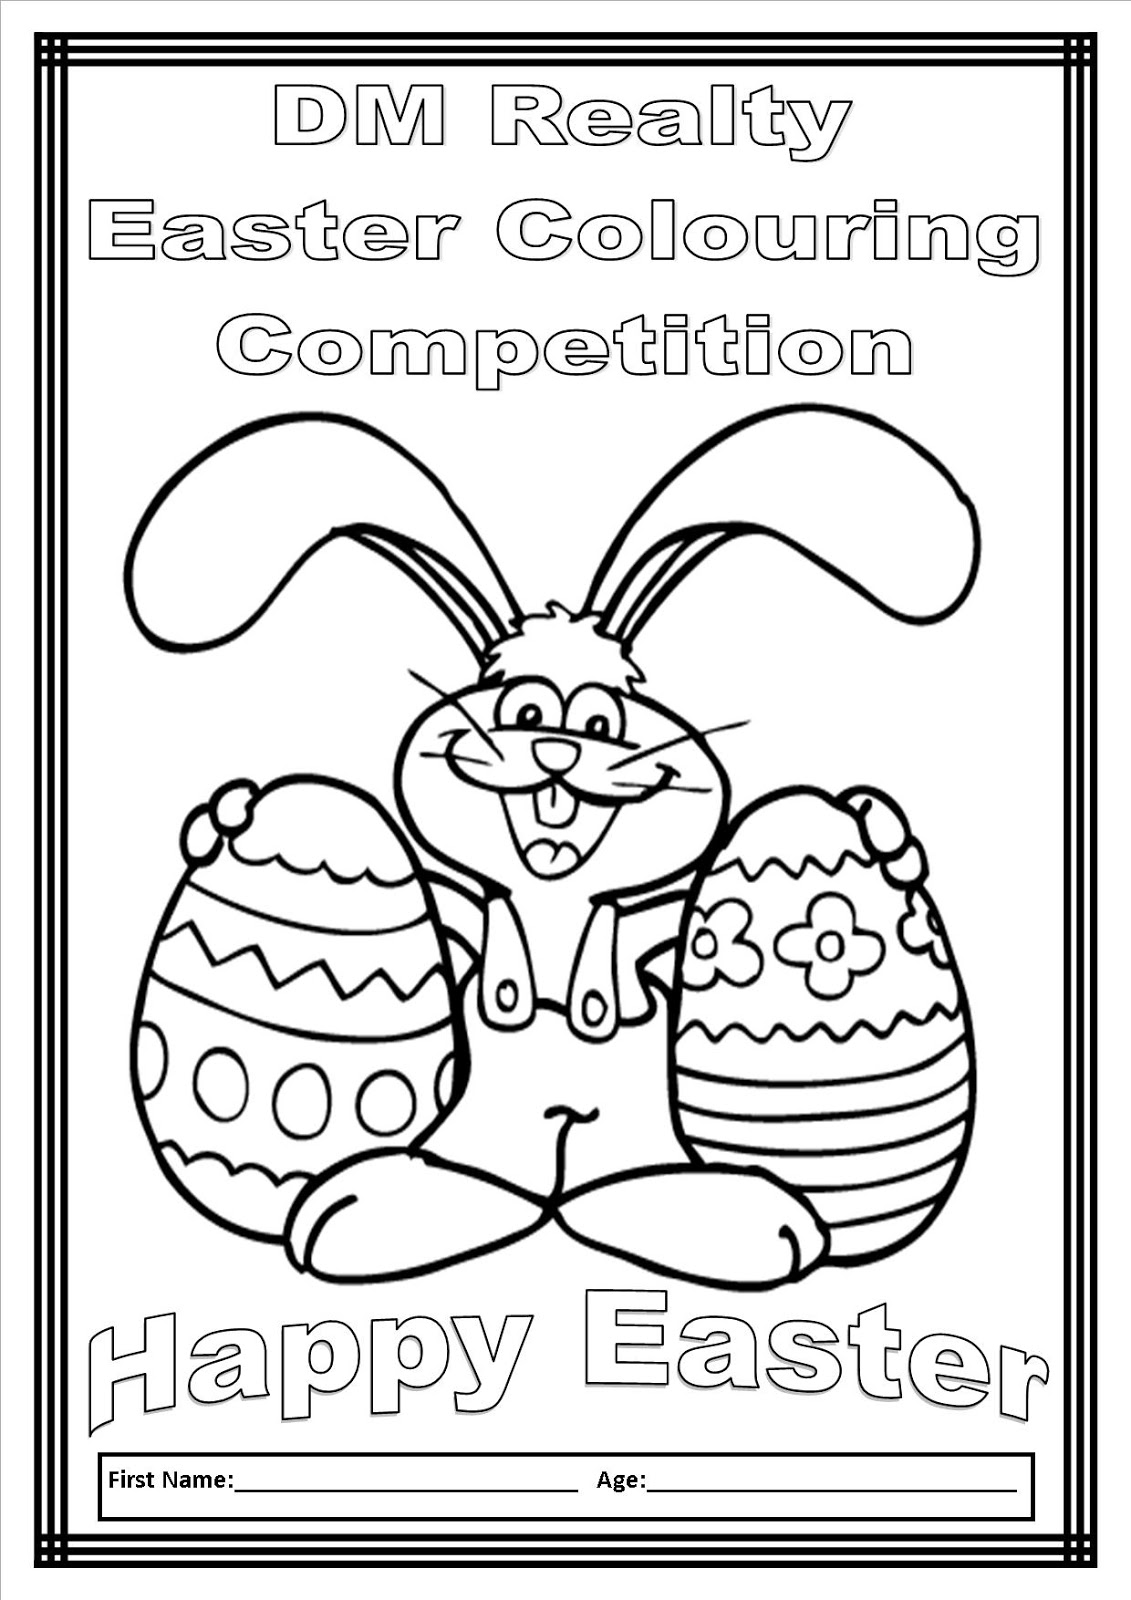 DM Realty: DM Realty Easter Colouring Competition 2013